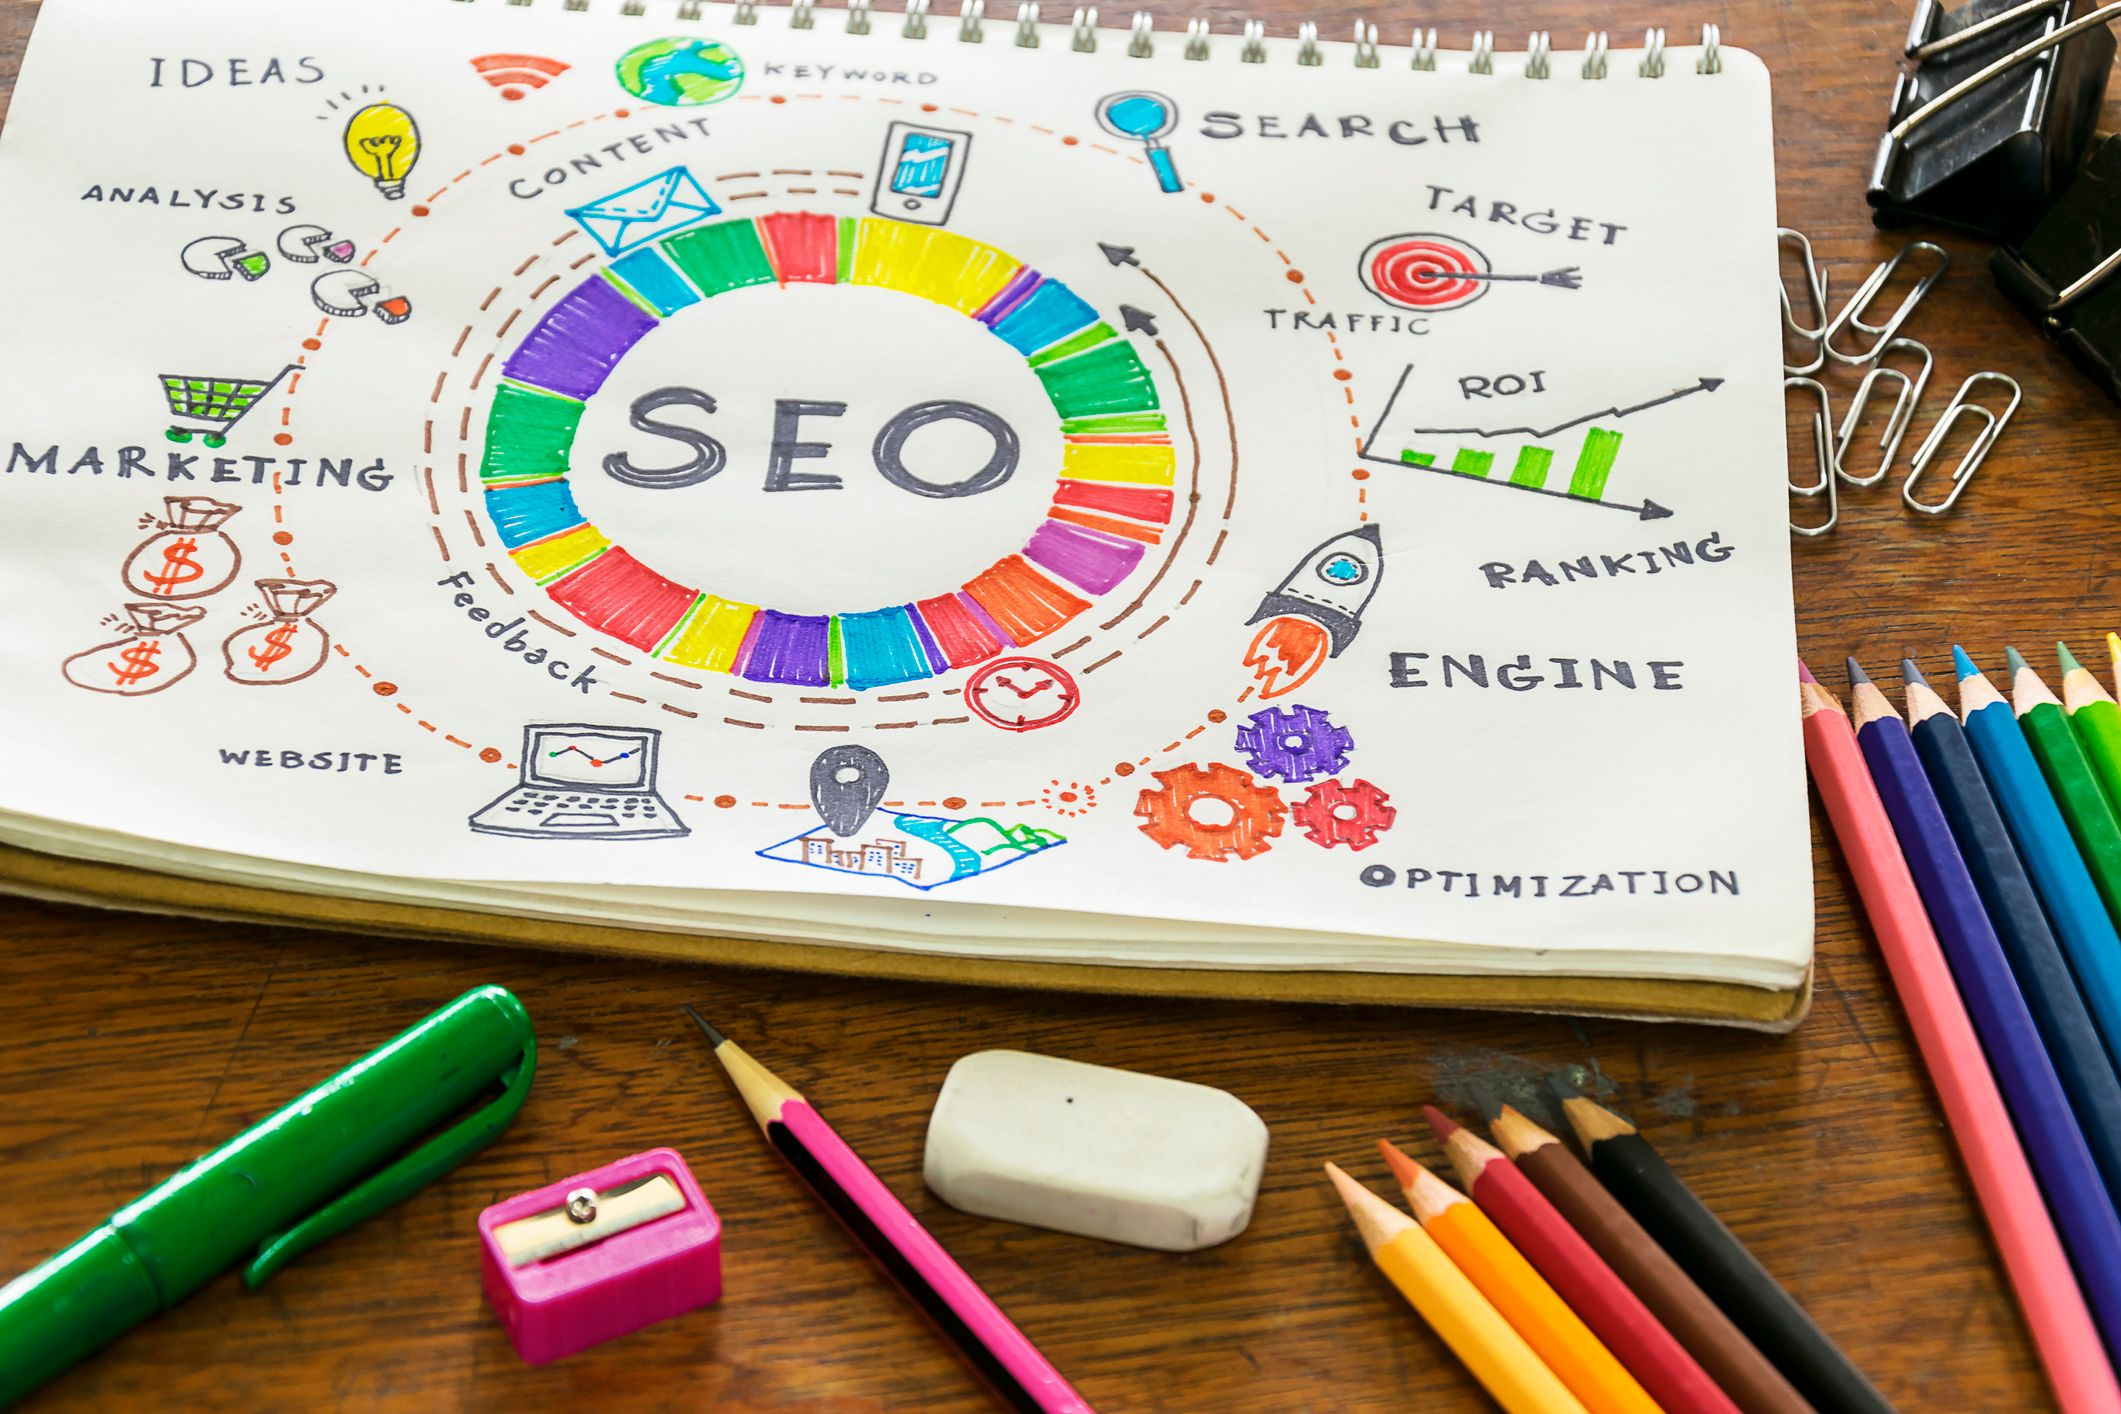 5 Reasons Why SEO Carries More Weight During (and After) COVID-19